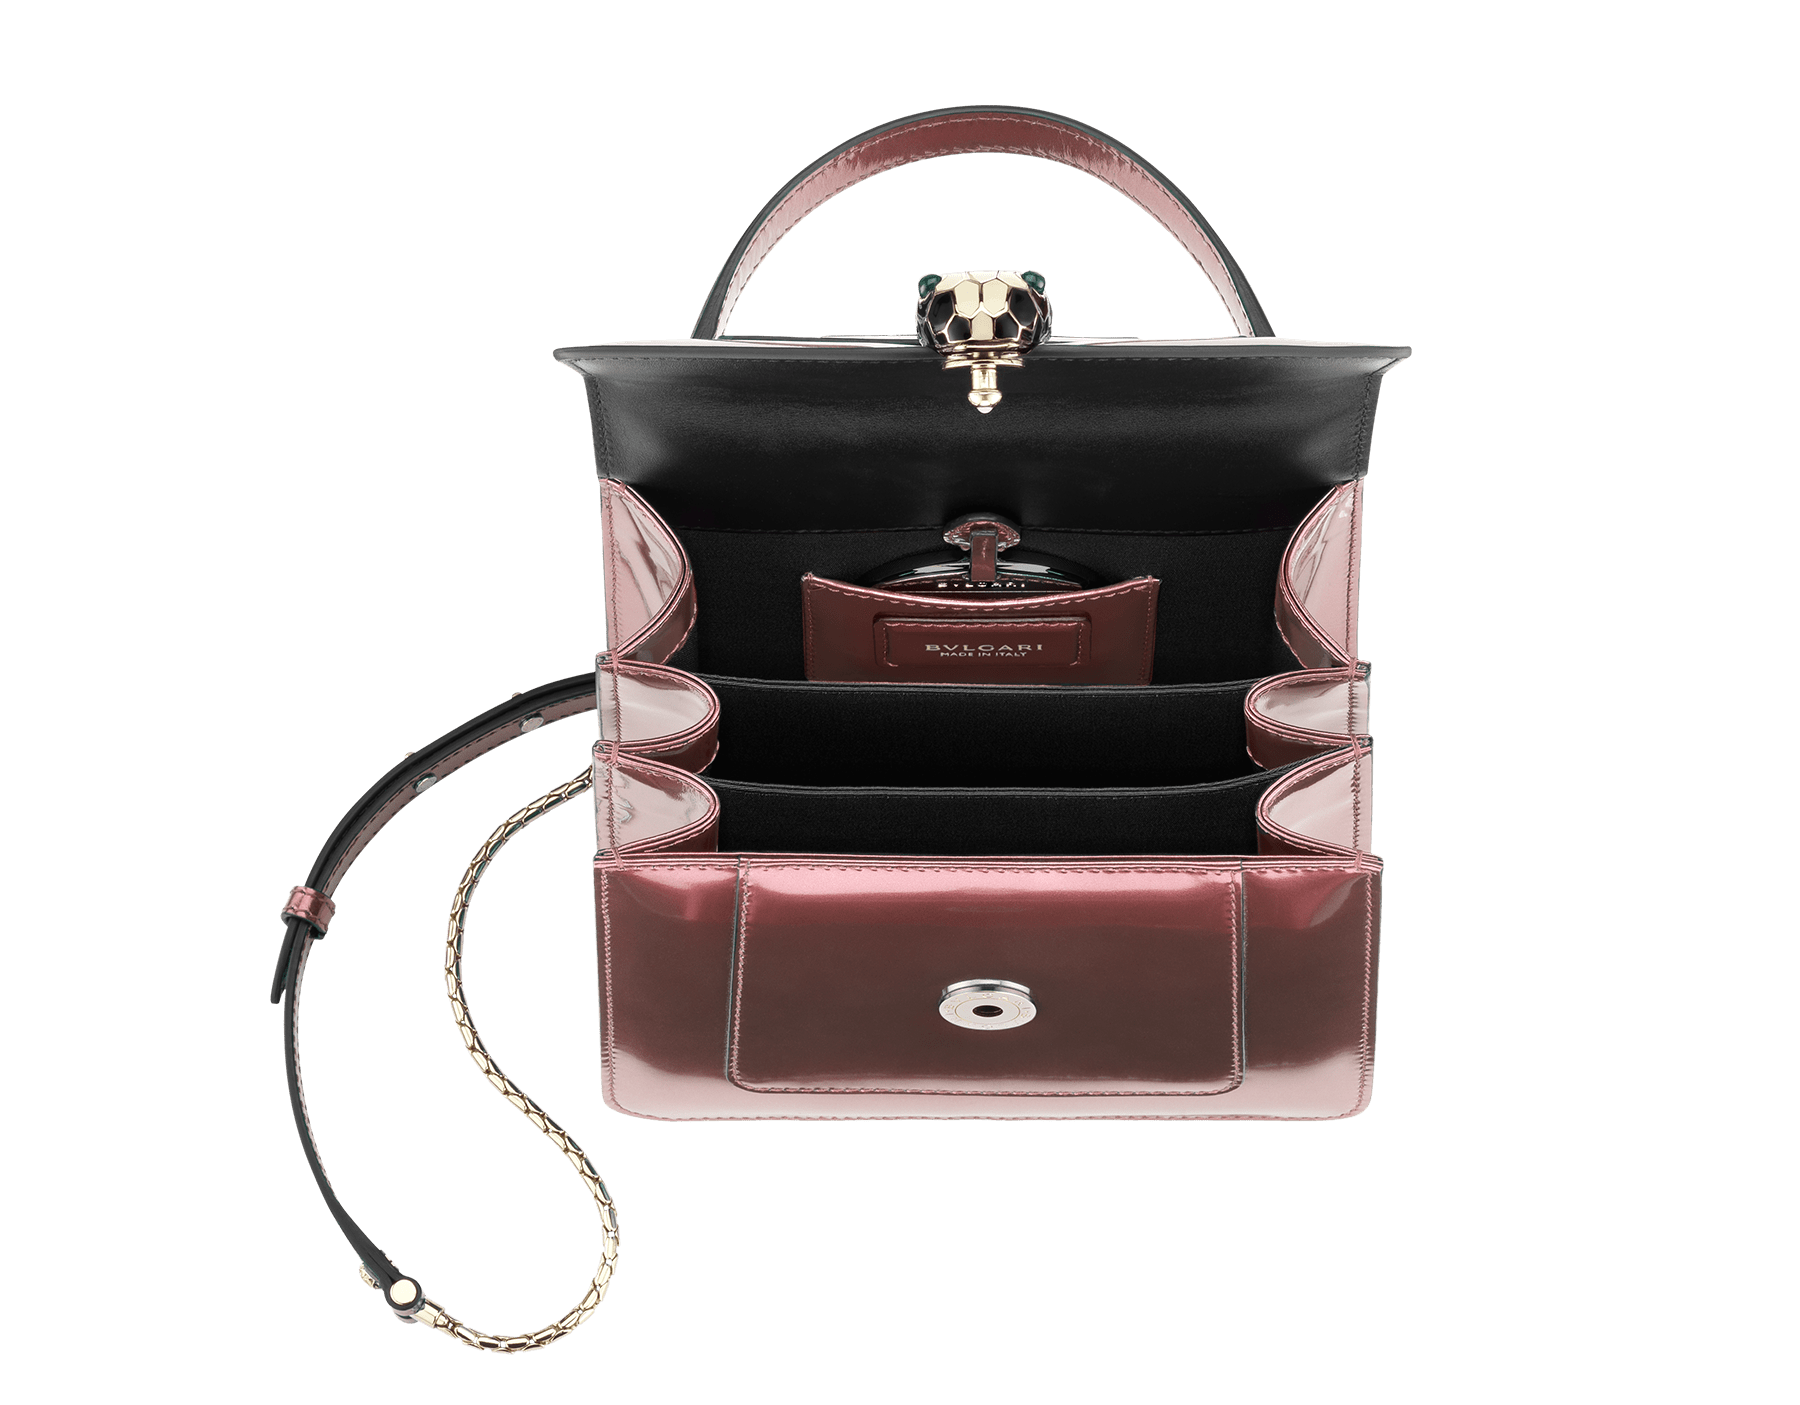 Flap cover bag Serpenti Forever in rose quartz brushed metallic calf leather. Brass light gold plated hardware and snake head closure in black and white enamel, with eyes in green malachite. 284802 image 4